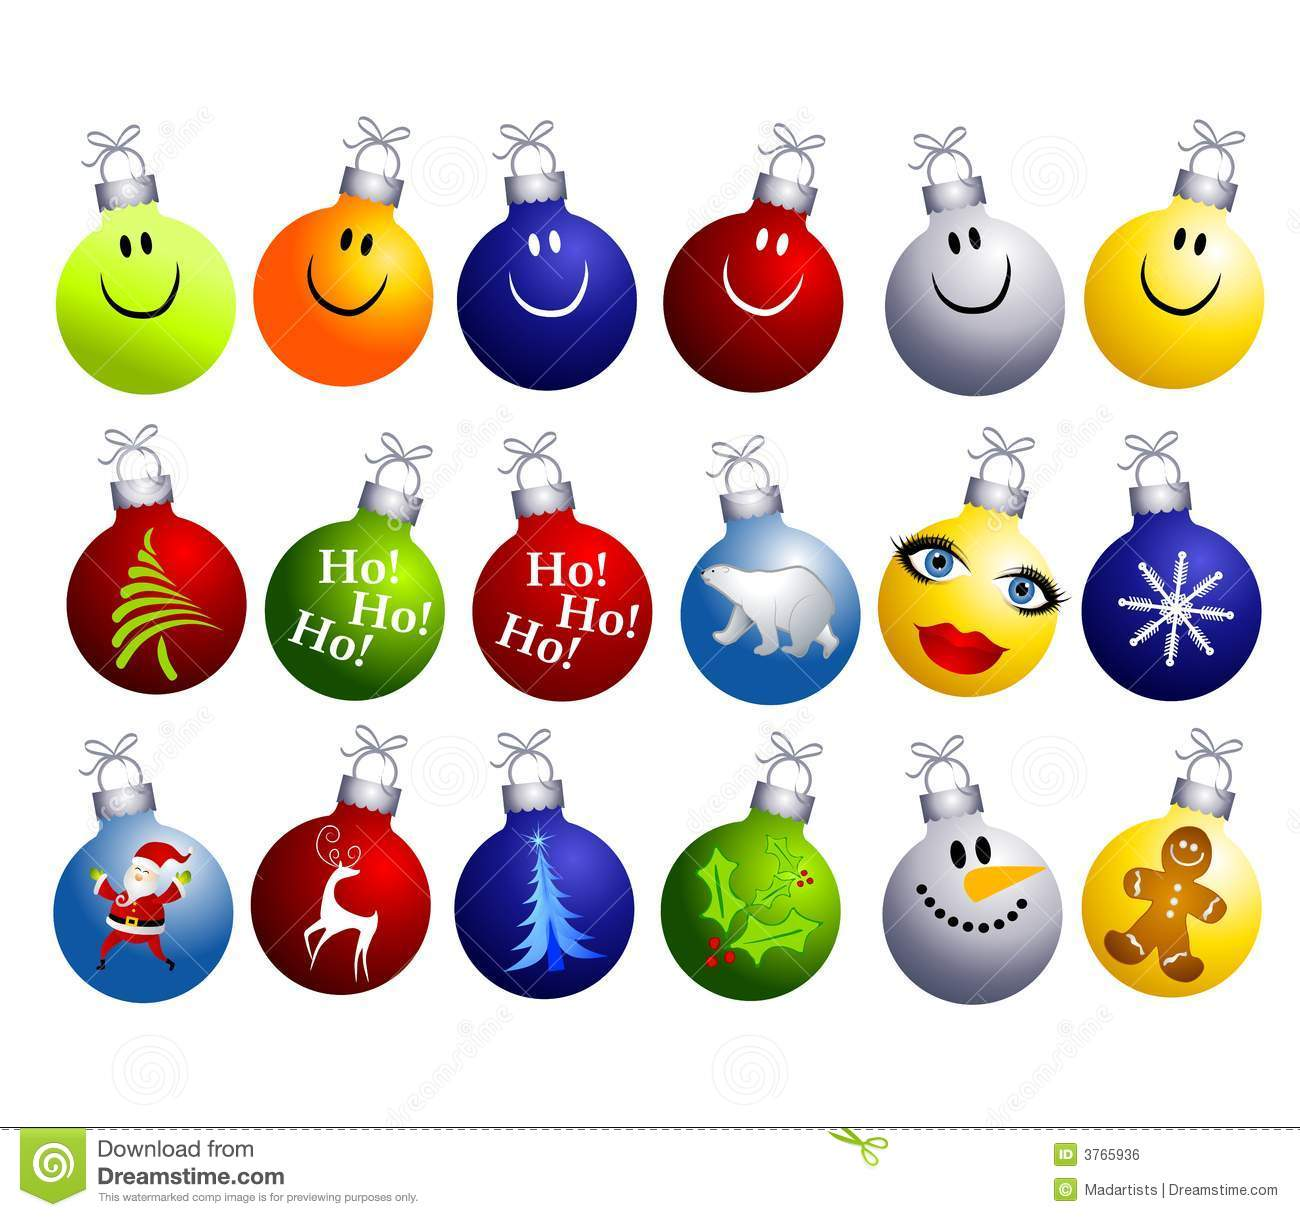 Assorted Christmas Ornaments Clip Art Royalty Free Stock Image - Image ...